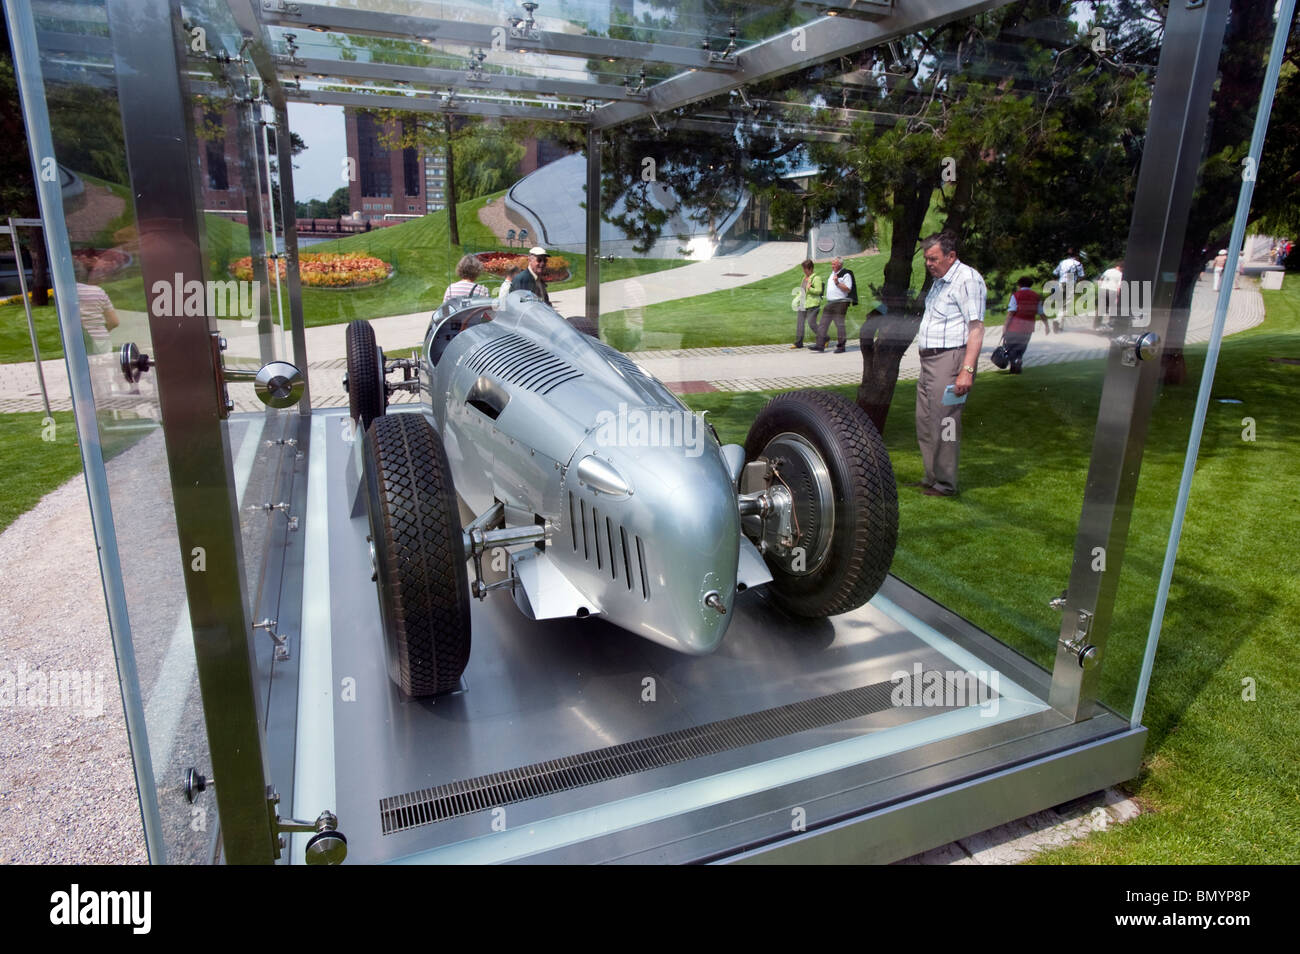 Antique Audi racing car in glass display case at Volkswagen Autostadt or Car City in Wolfsburg Germany - Stock Image